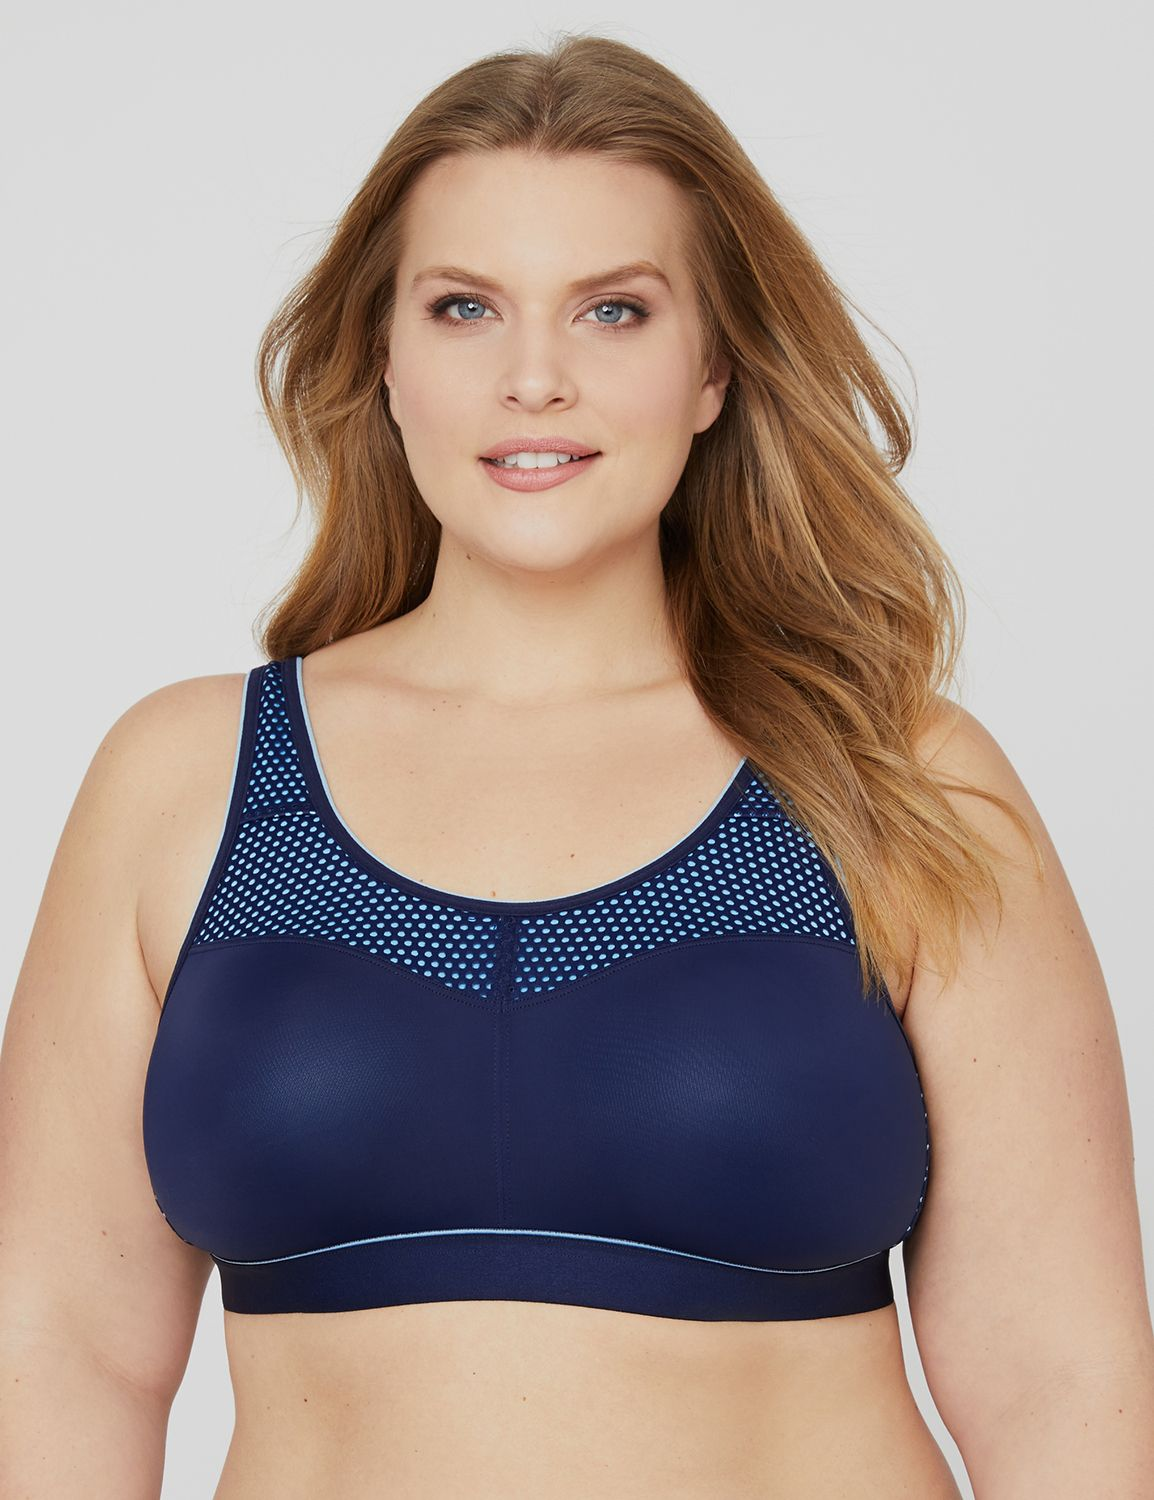 Exhale Active Bra Strappy UW Sport Bra MP-300095086